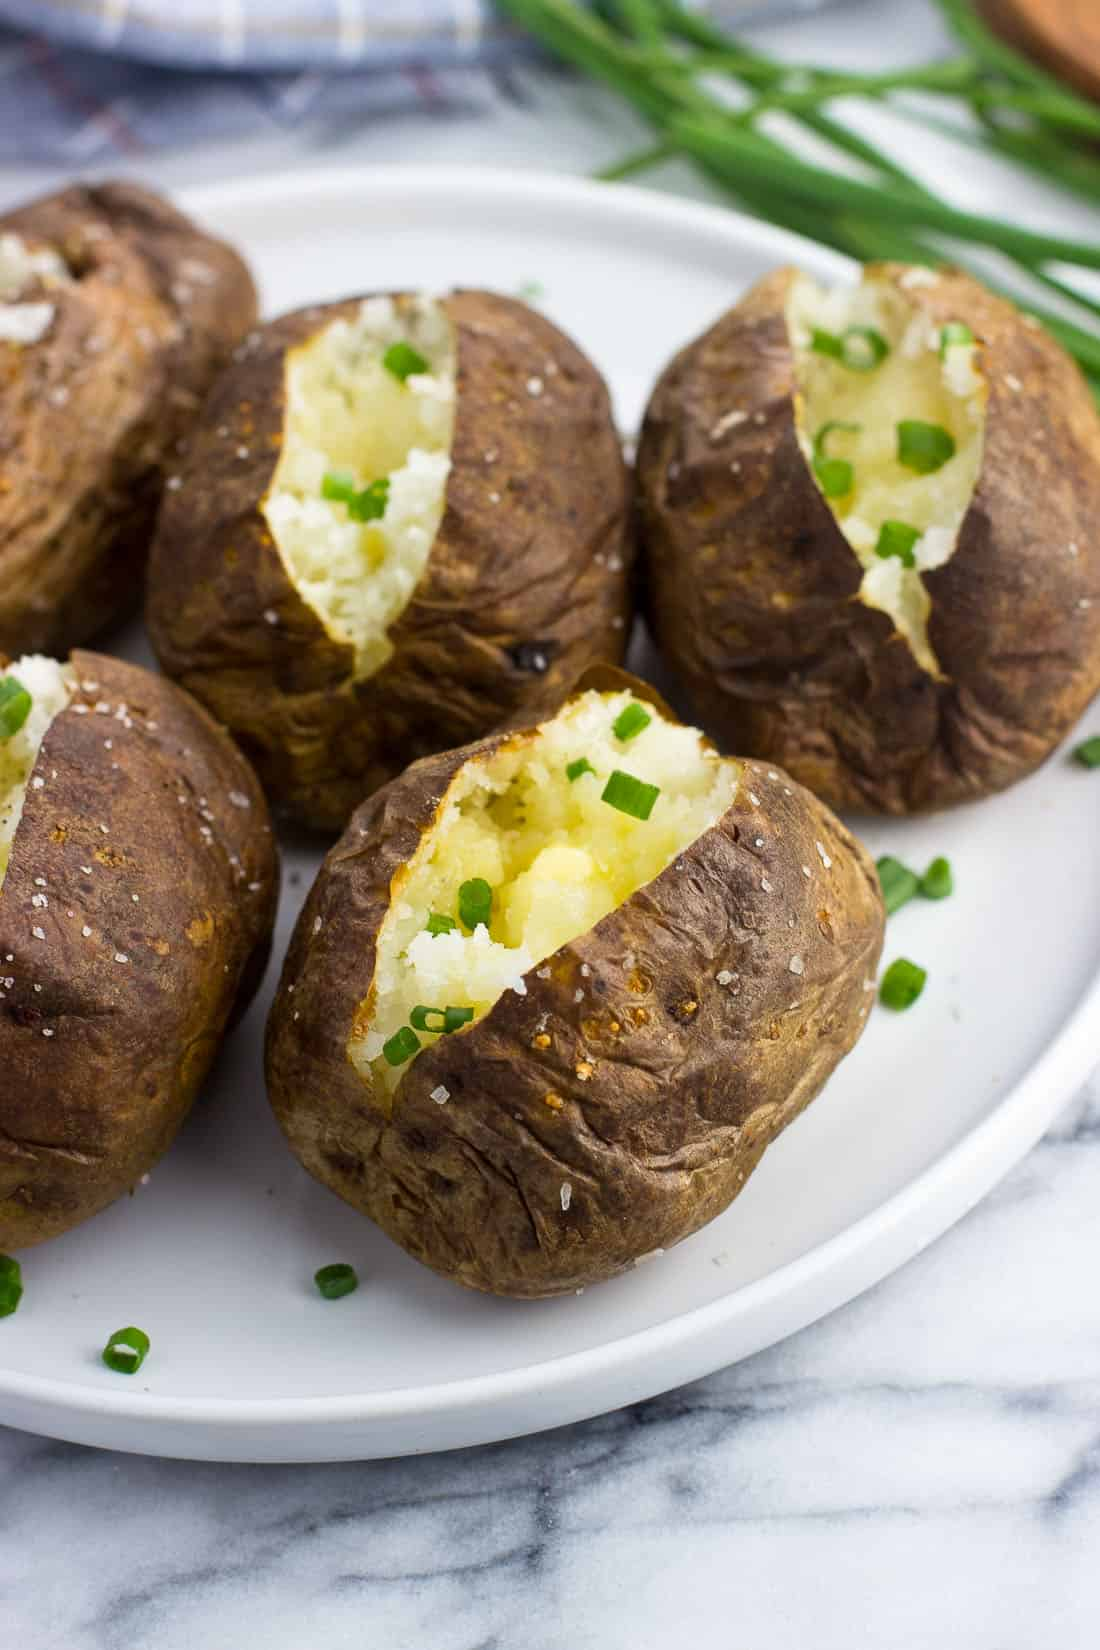 A close-up of an air fryer baked potato on a plate